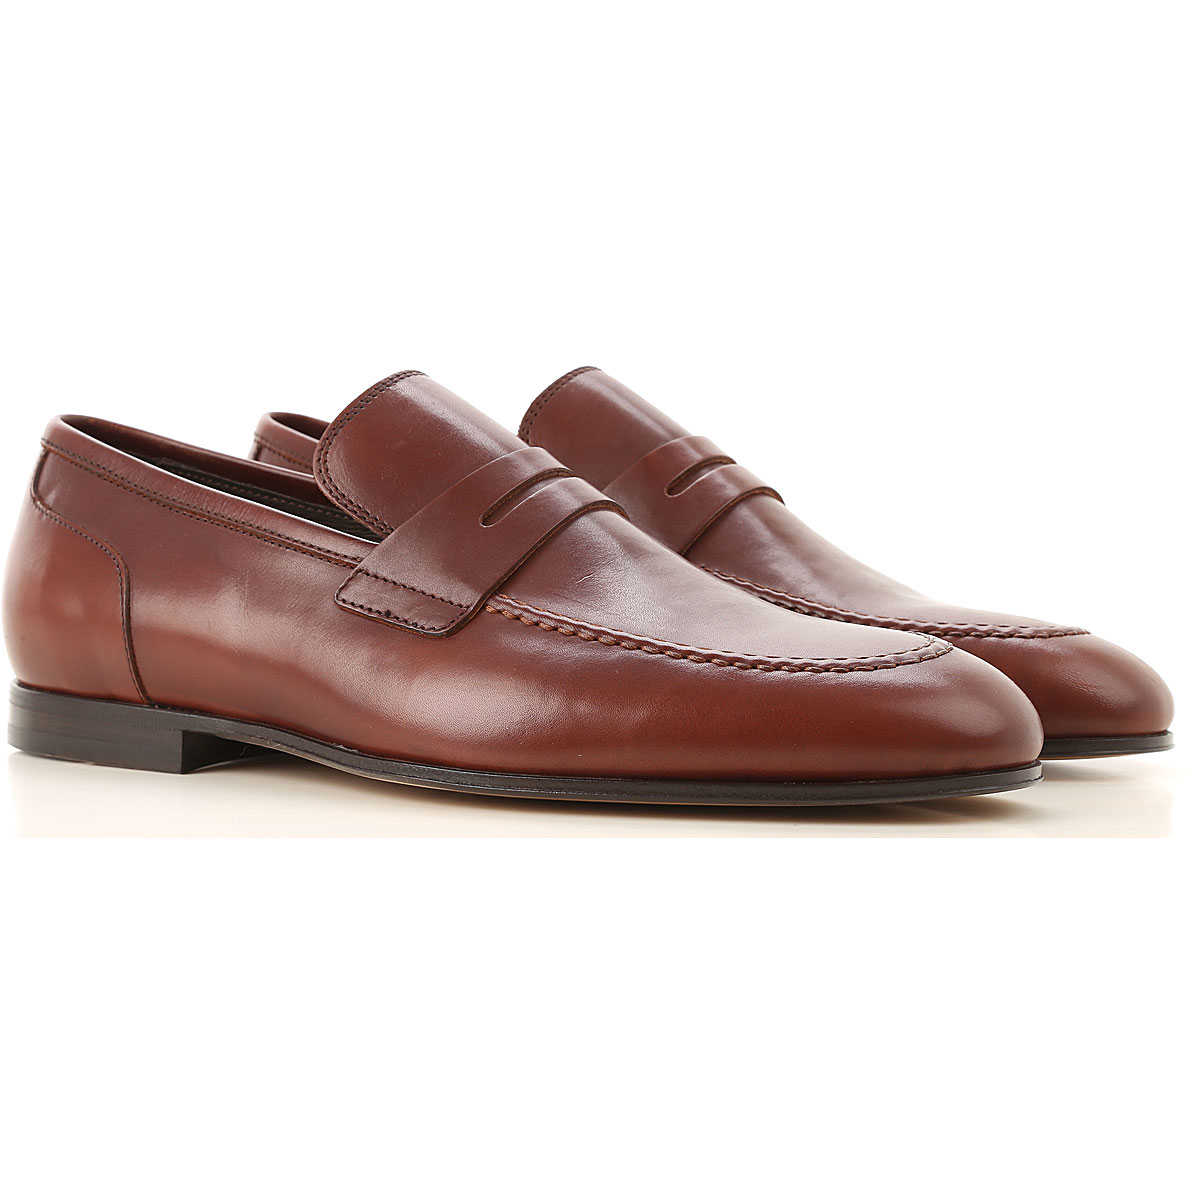 Paul Smith Loafers for Men